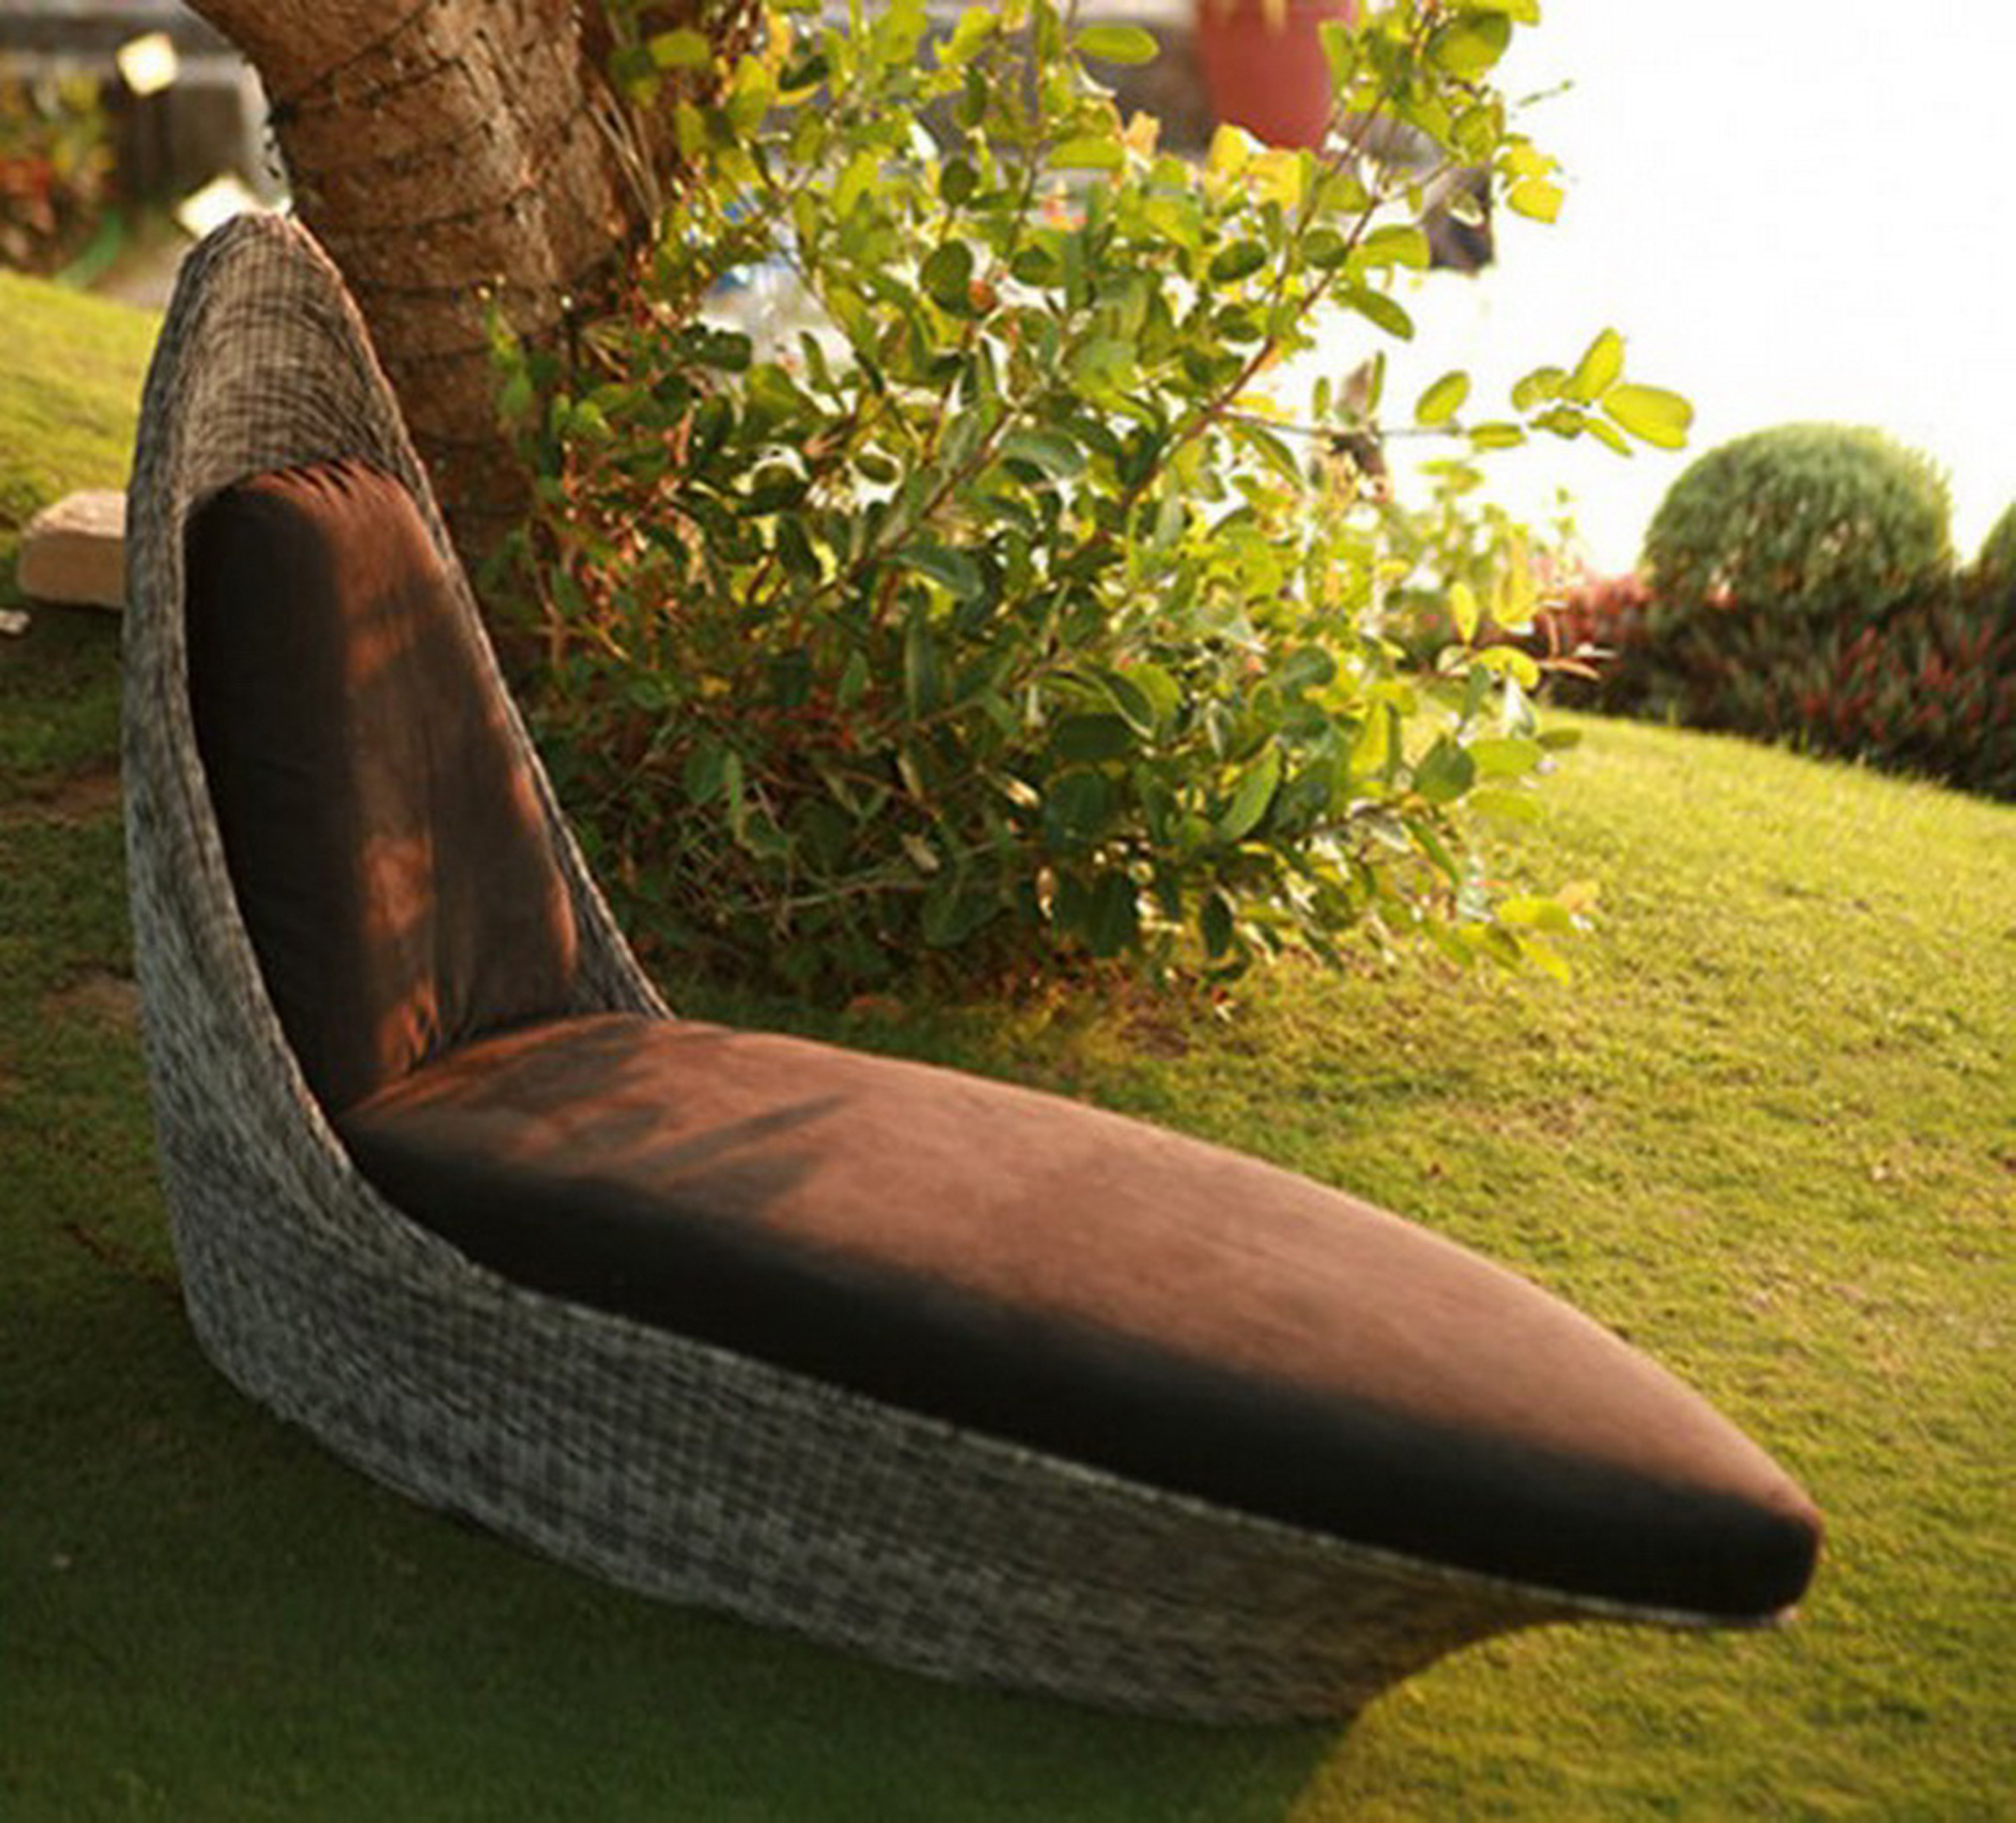 Amazing Outdoor Modern Wicker Lounge Chair Design Idea In Brown With Chocolate Seat Cushion Remarkable Outdoor Modern Wicker Ideas (View 2 of 28)